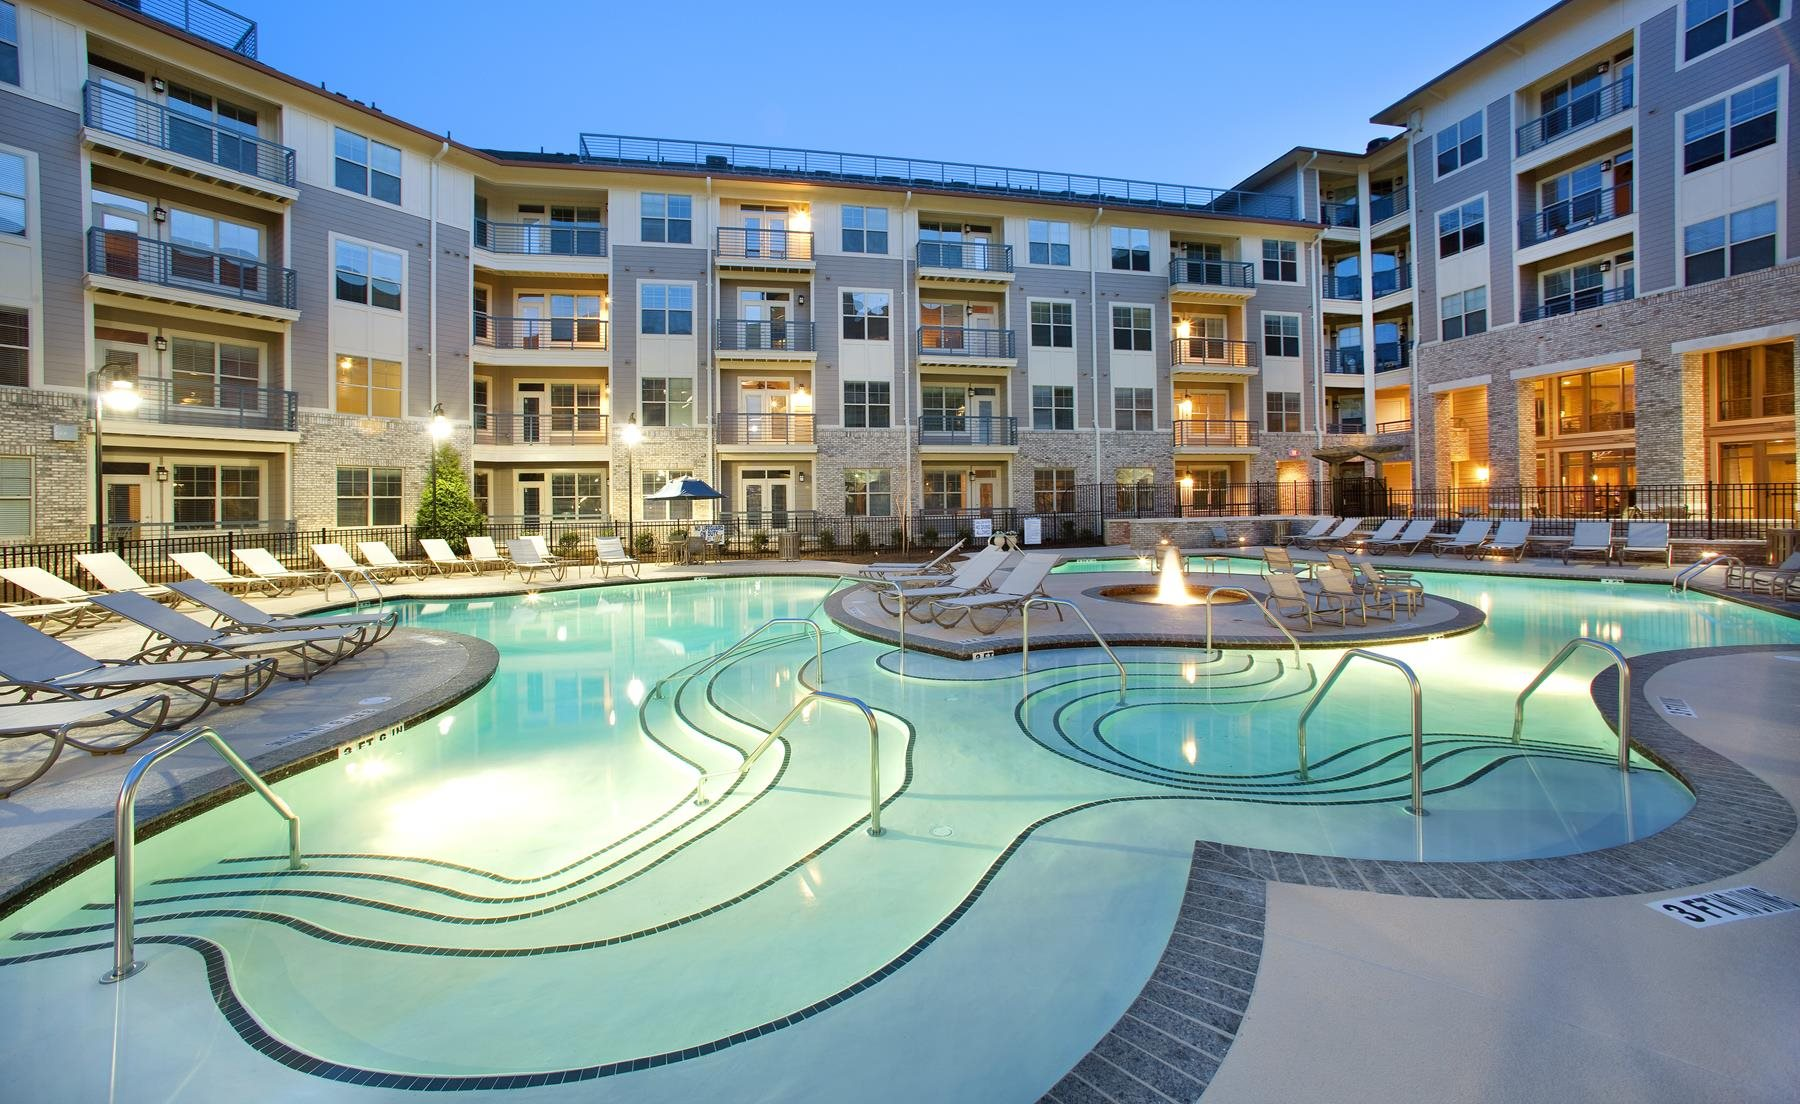 Luxury Apartments Pool. Raleigh homepagegallery 1 The Tribute  Apartments in NC